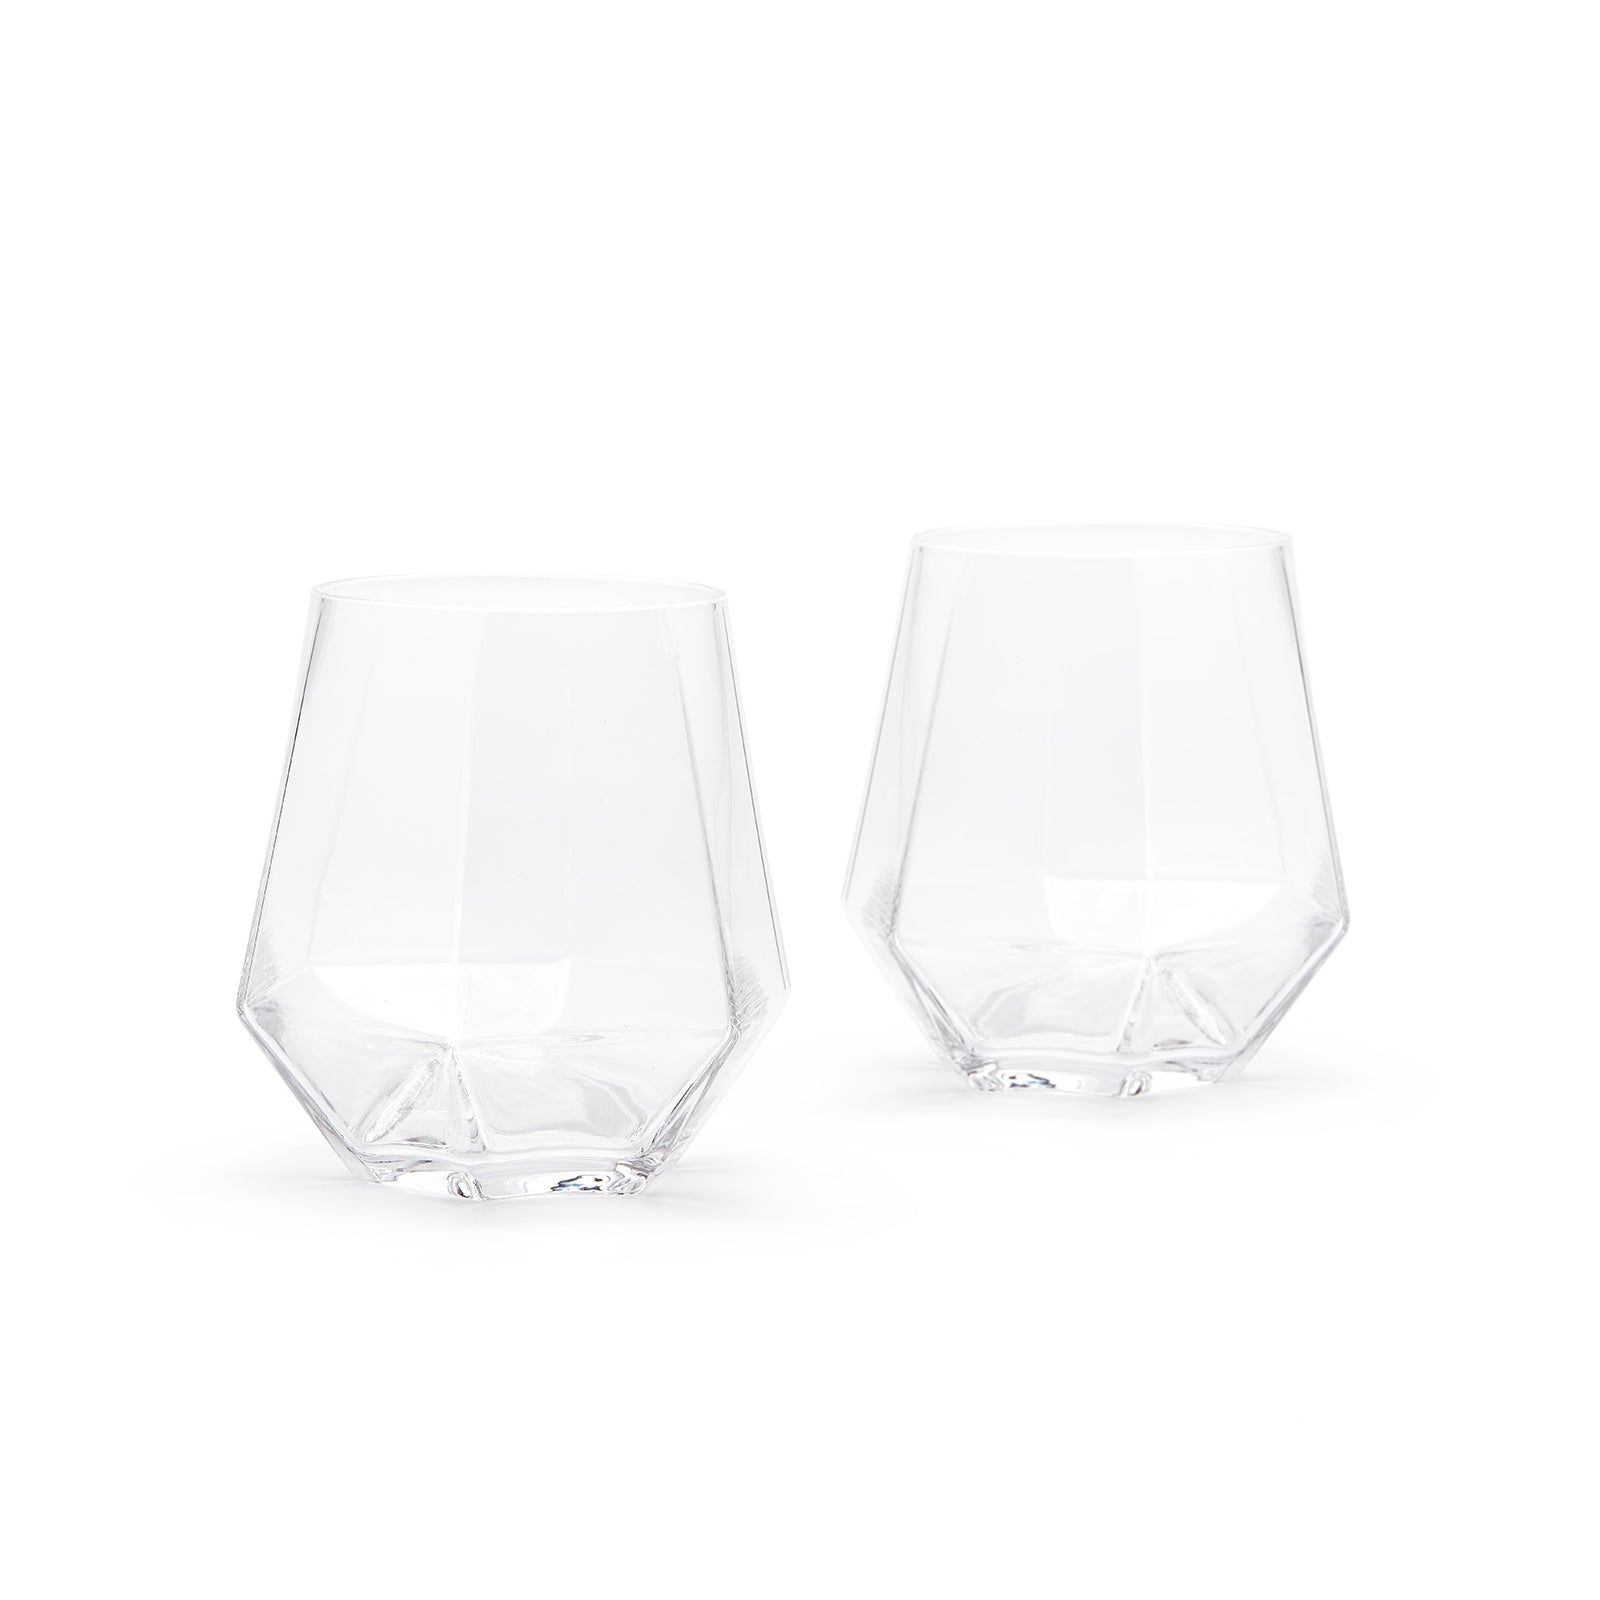 Radient crystal glasses (set of 2)